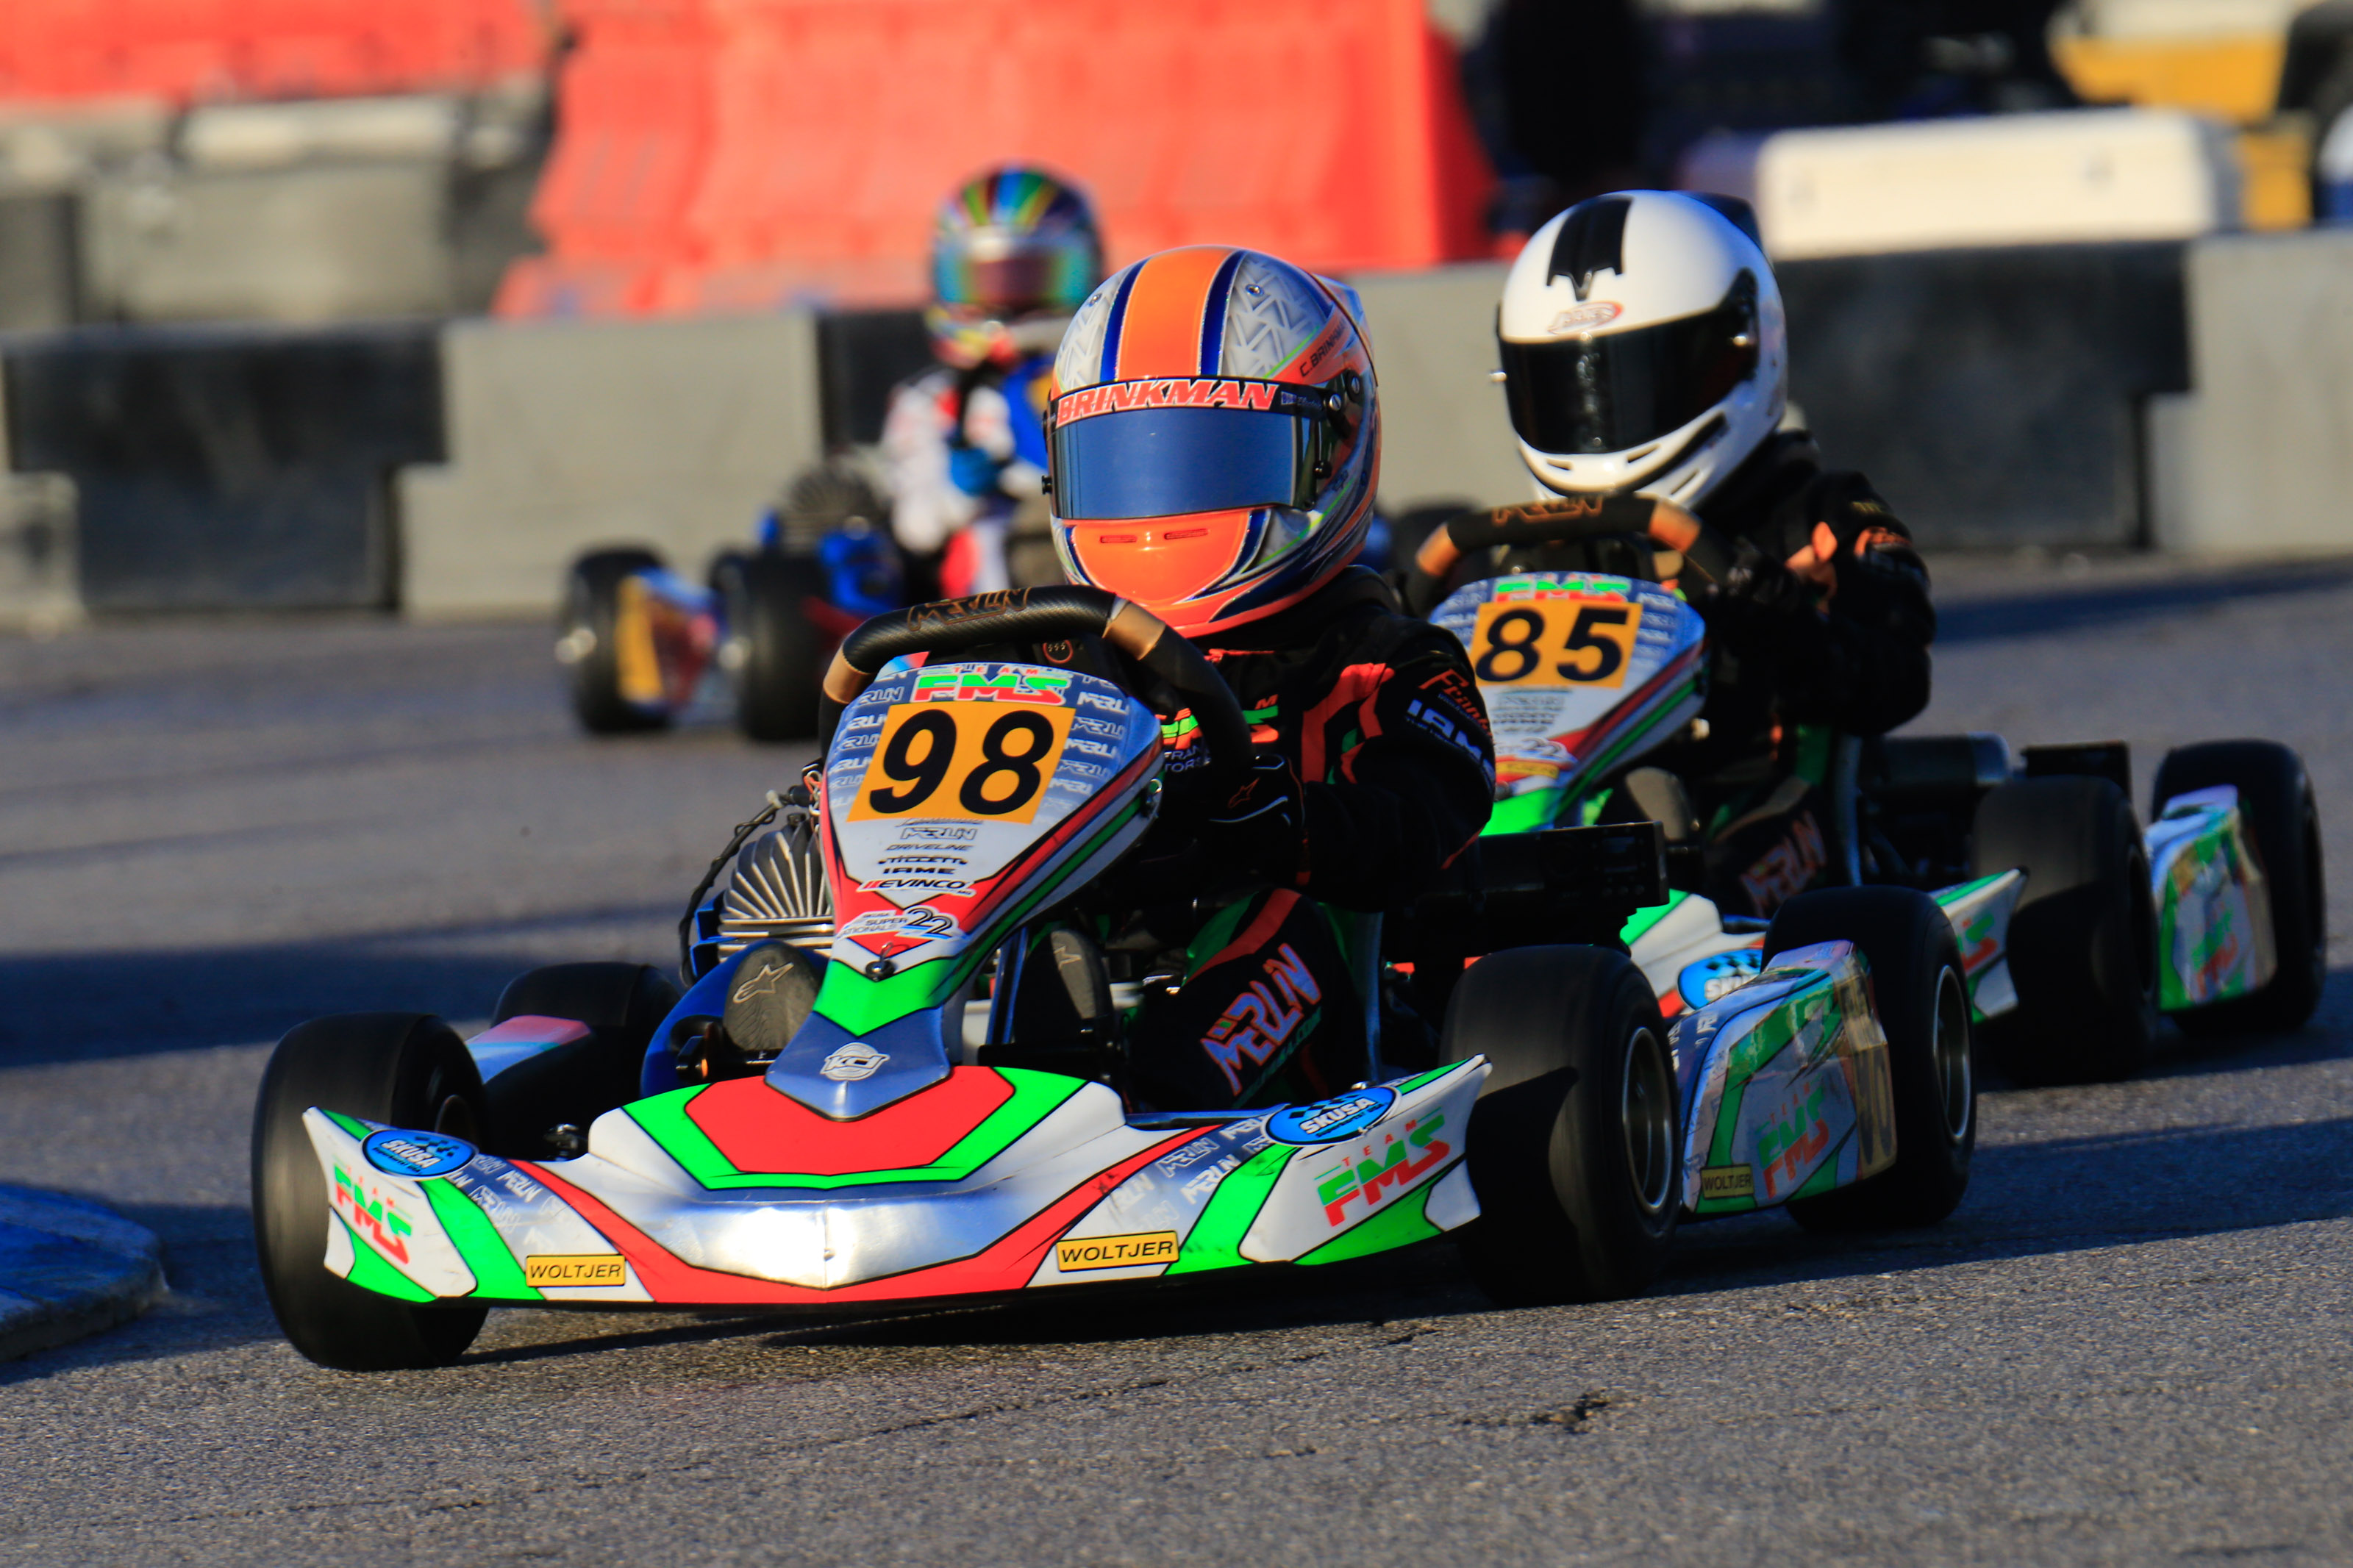 team-fms-racing-go-kart.jpg